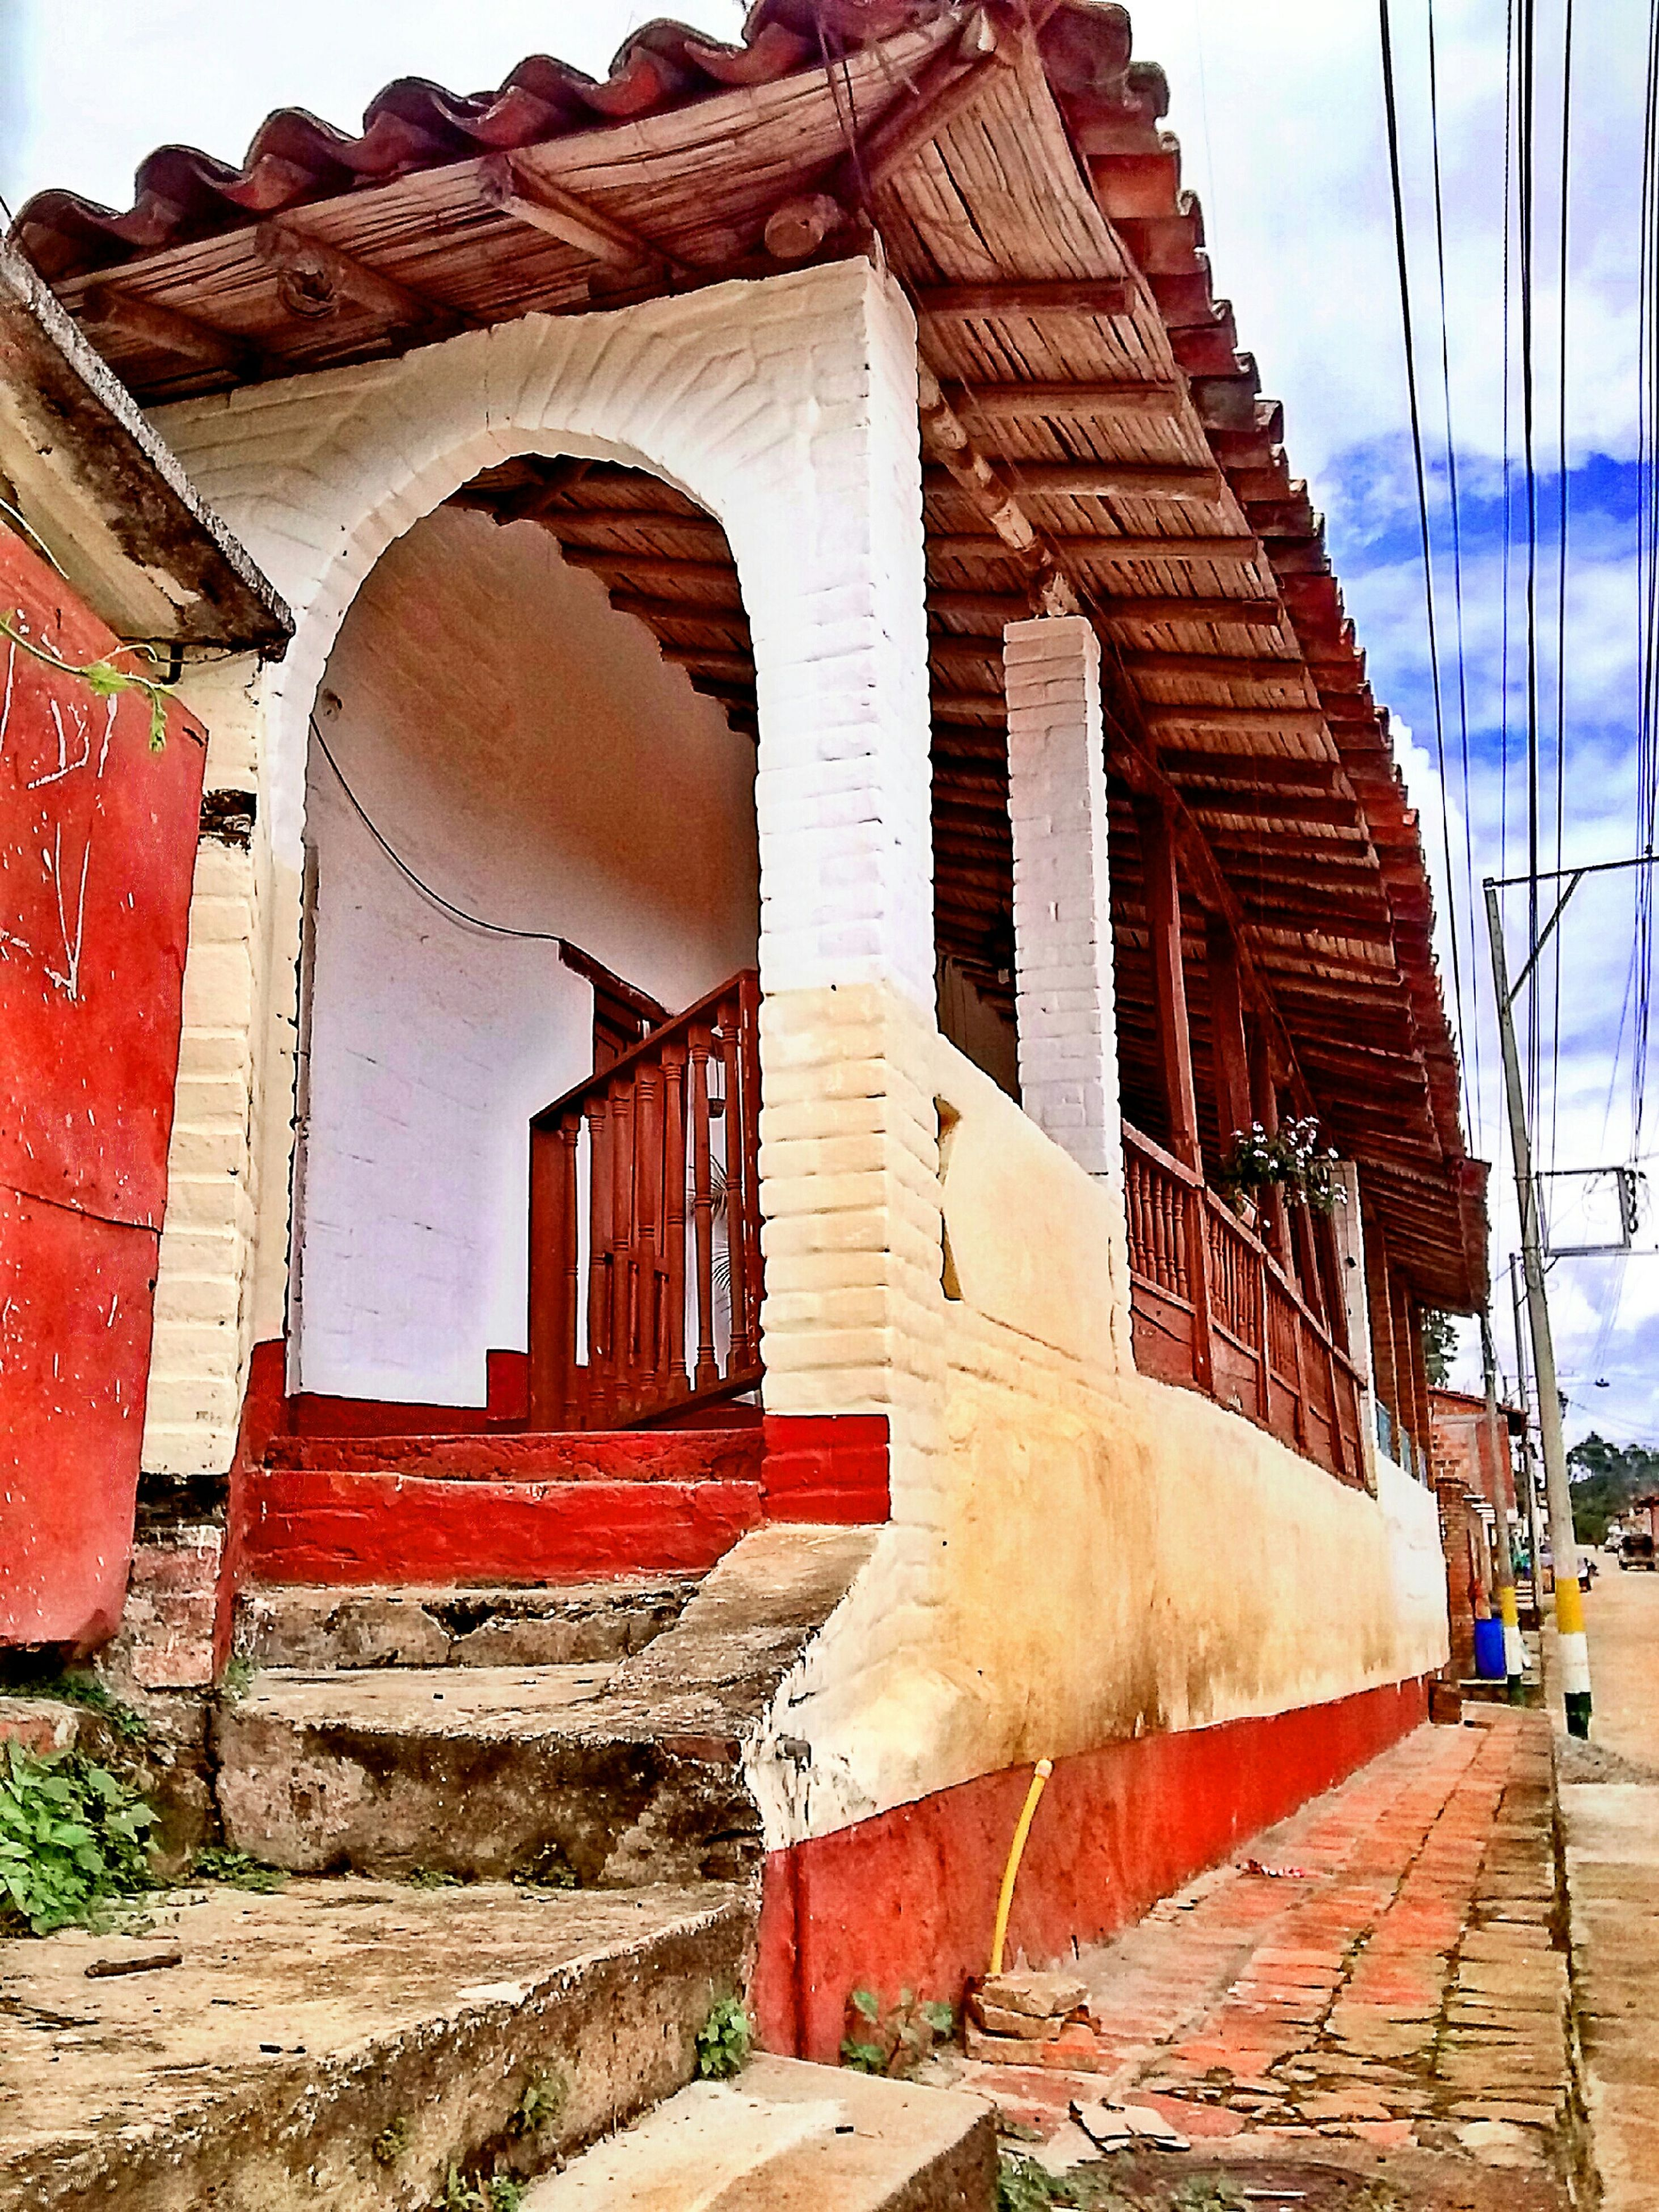 architecture, built structure, building exterior, brick wall, house, old, sky, low angle view, steps, sunlight, day, wall - building feature, outdoors, weathered, red, residential structure, building, no people, shadow, blue